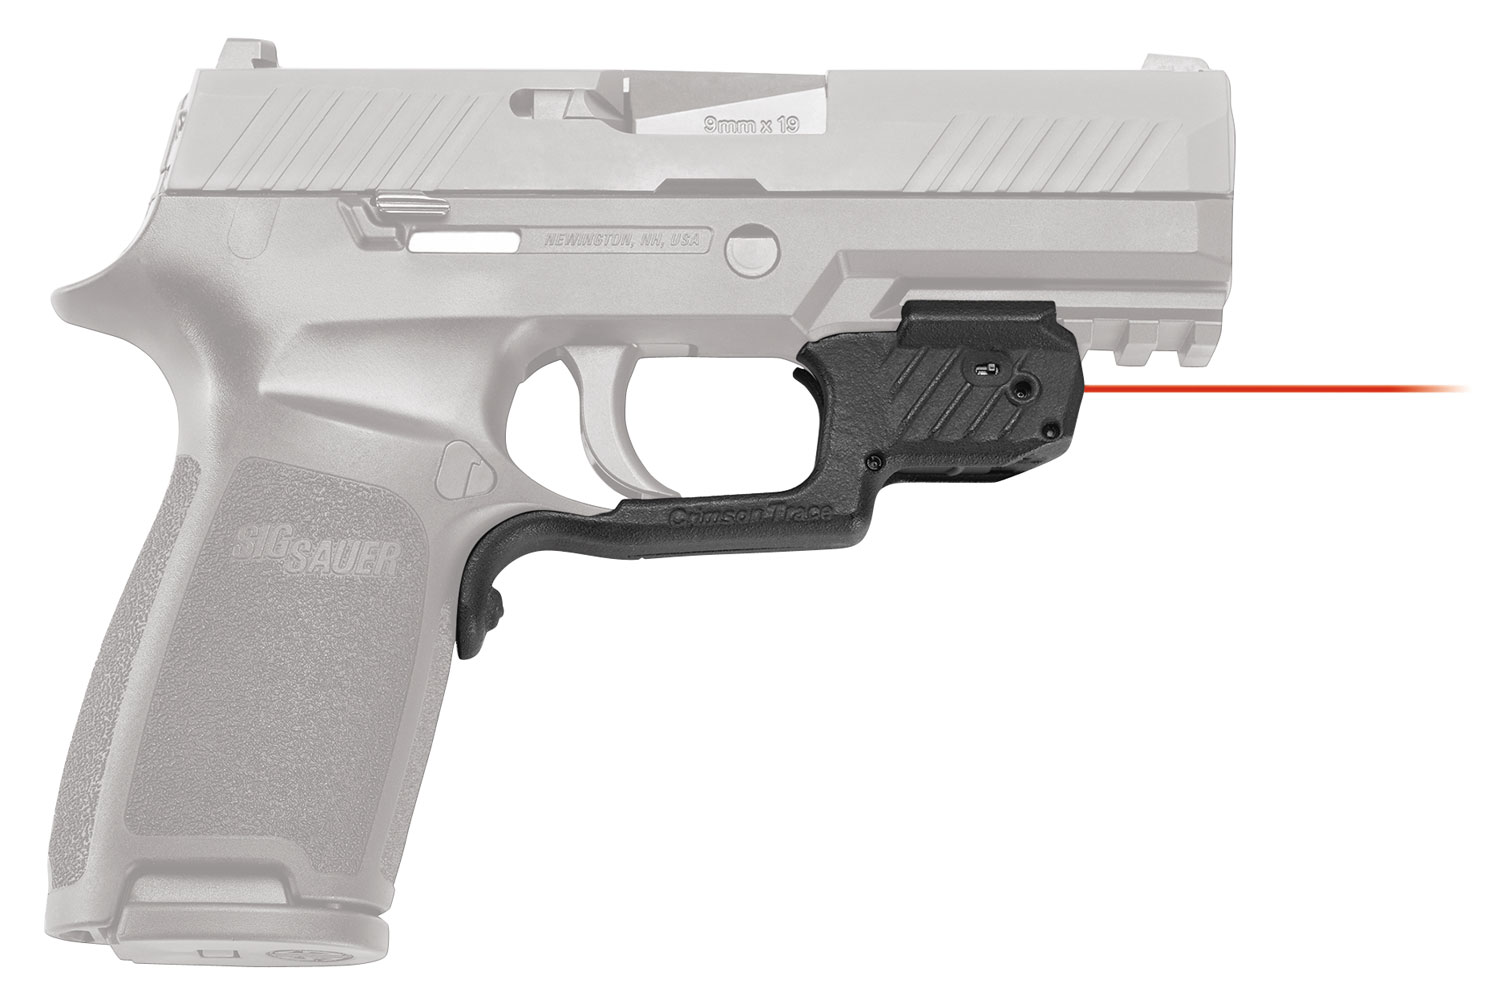 LASERGUARD SIG P320 RED - FRONT ACTIVATION